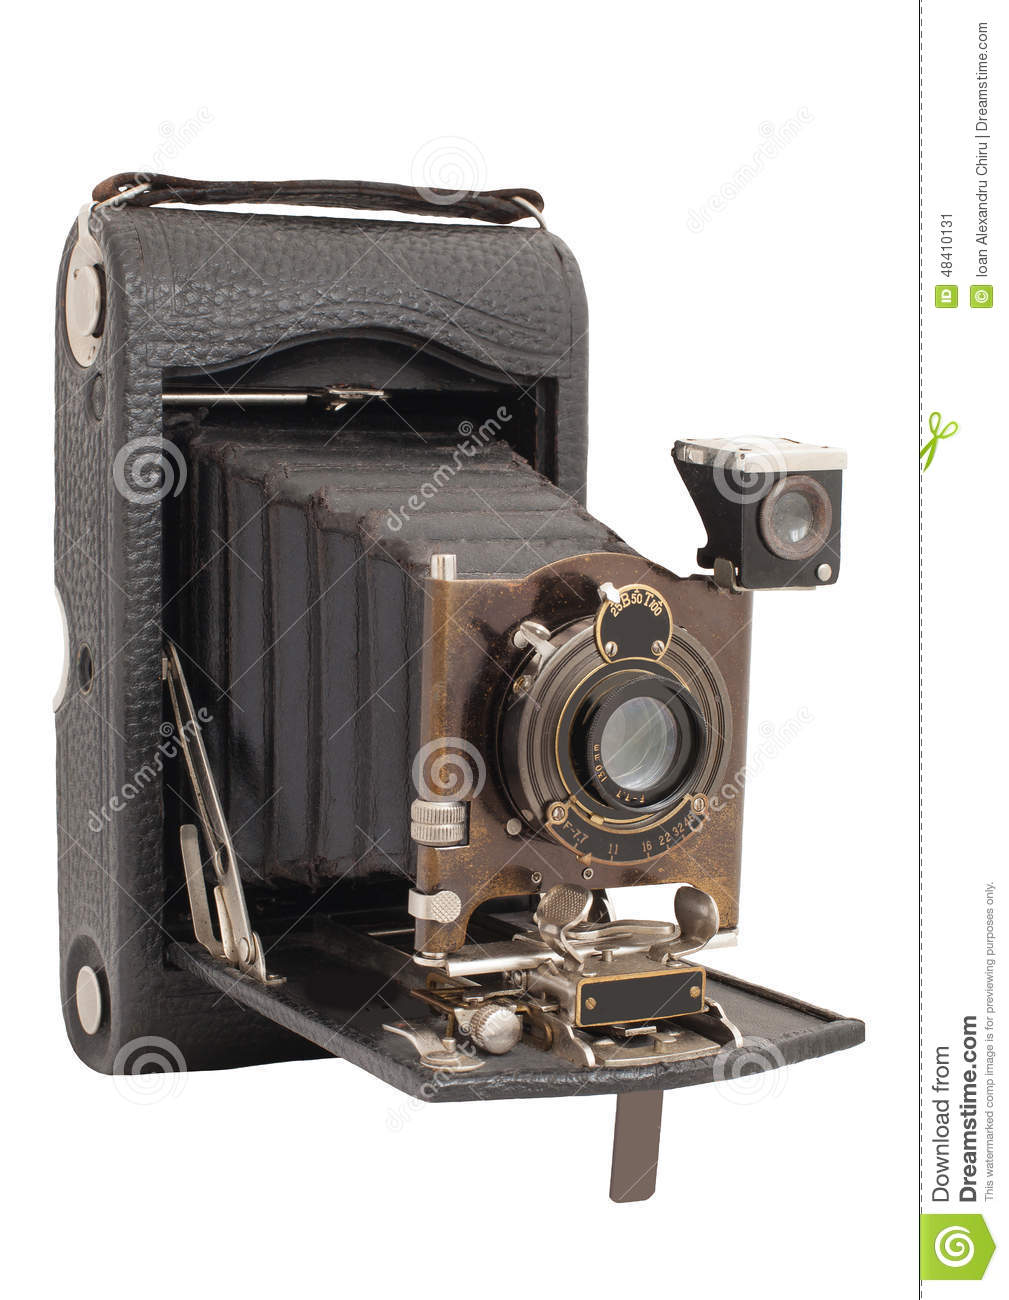 Old camera vintage isolated on a white background